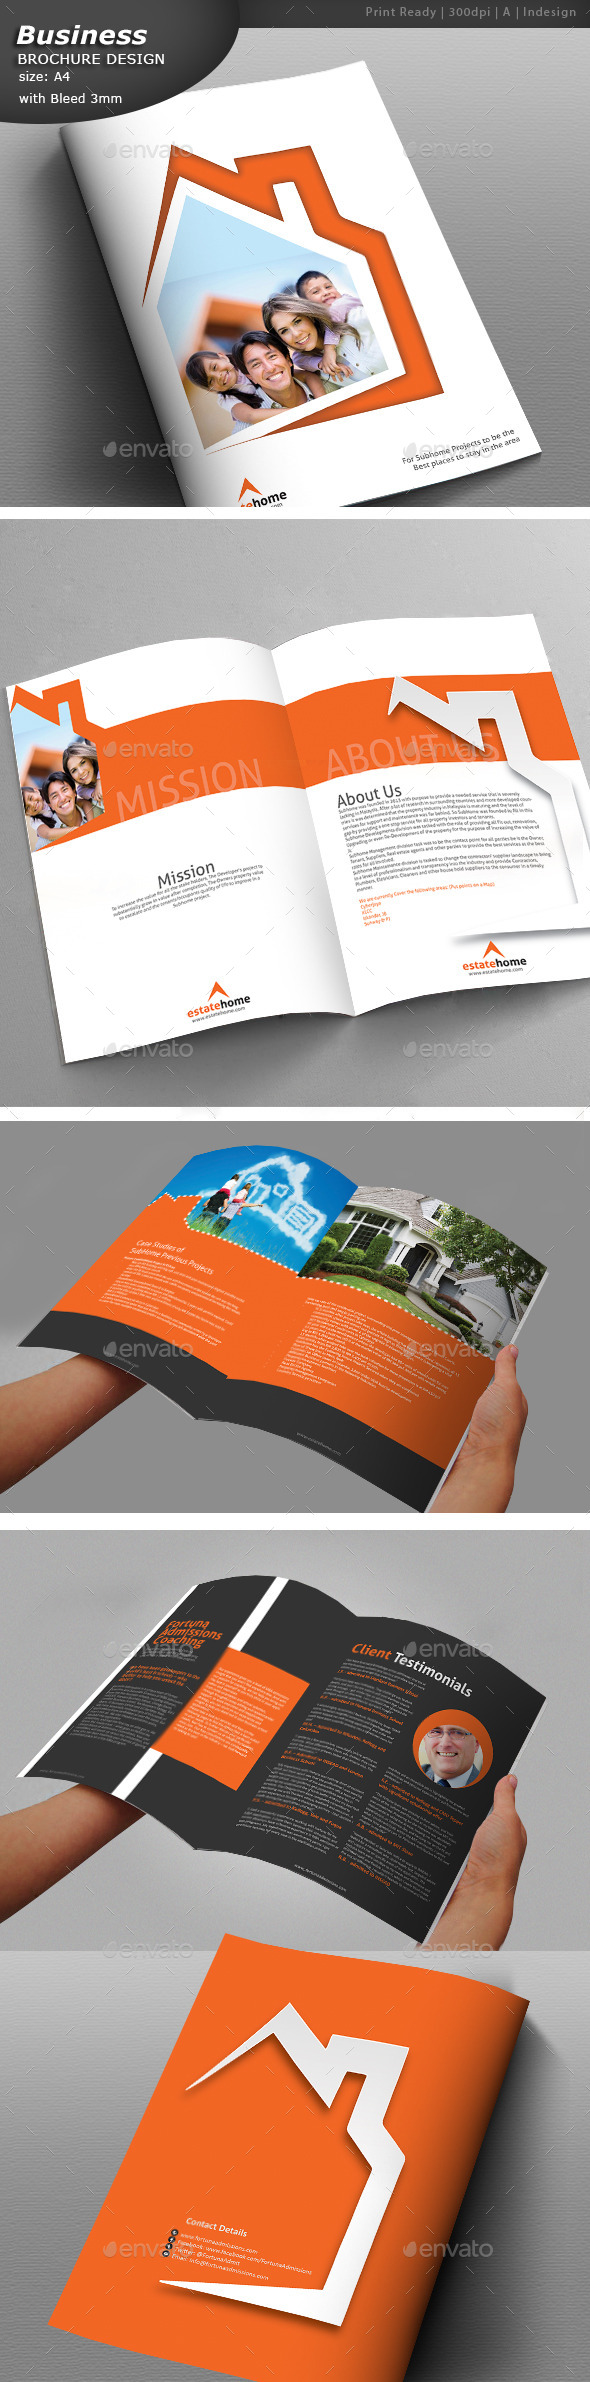 Real Estate Brochure - Church Flyers